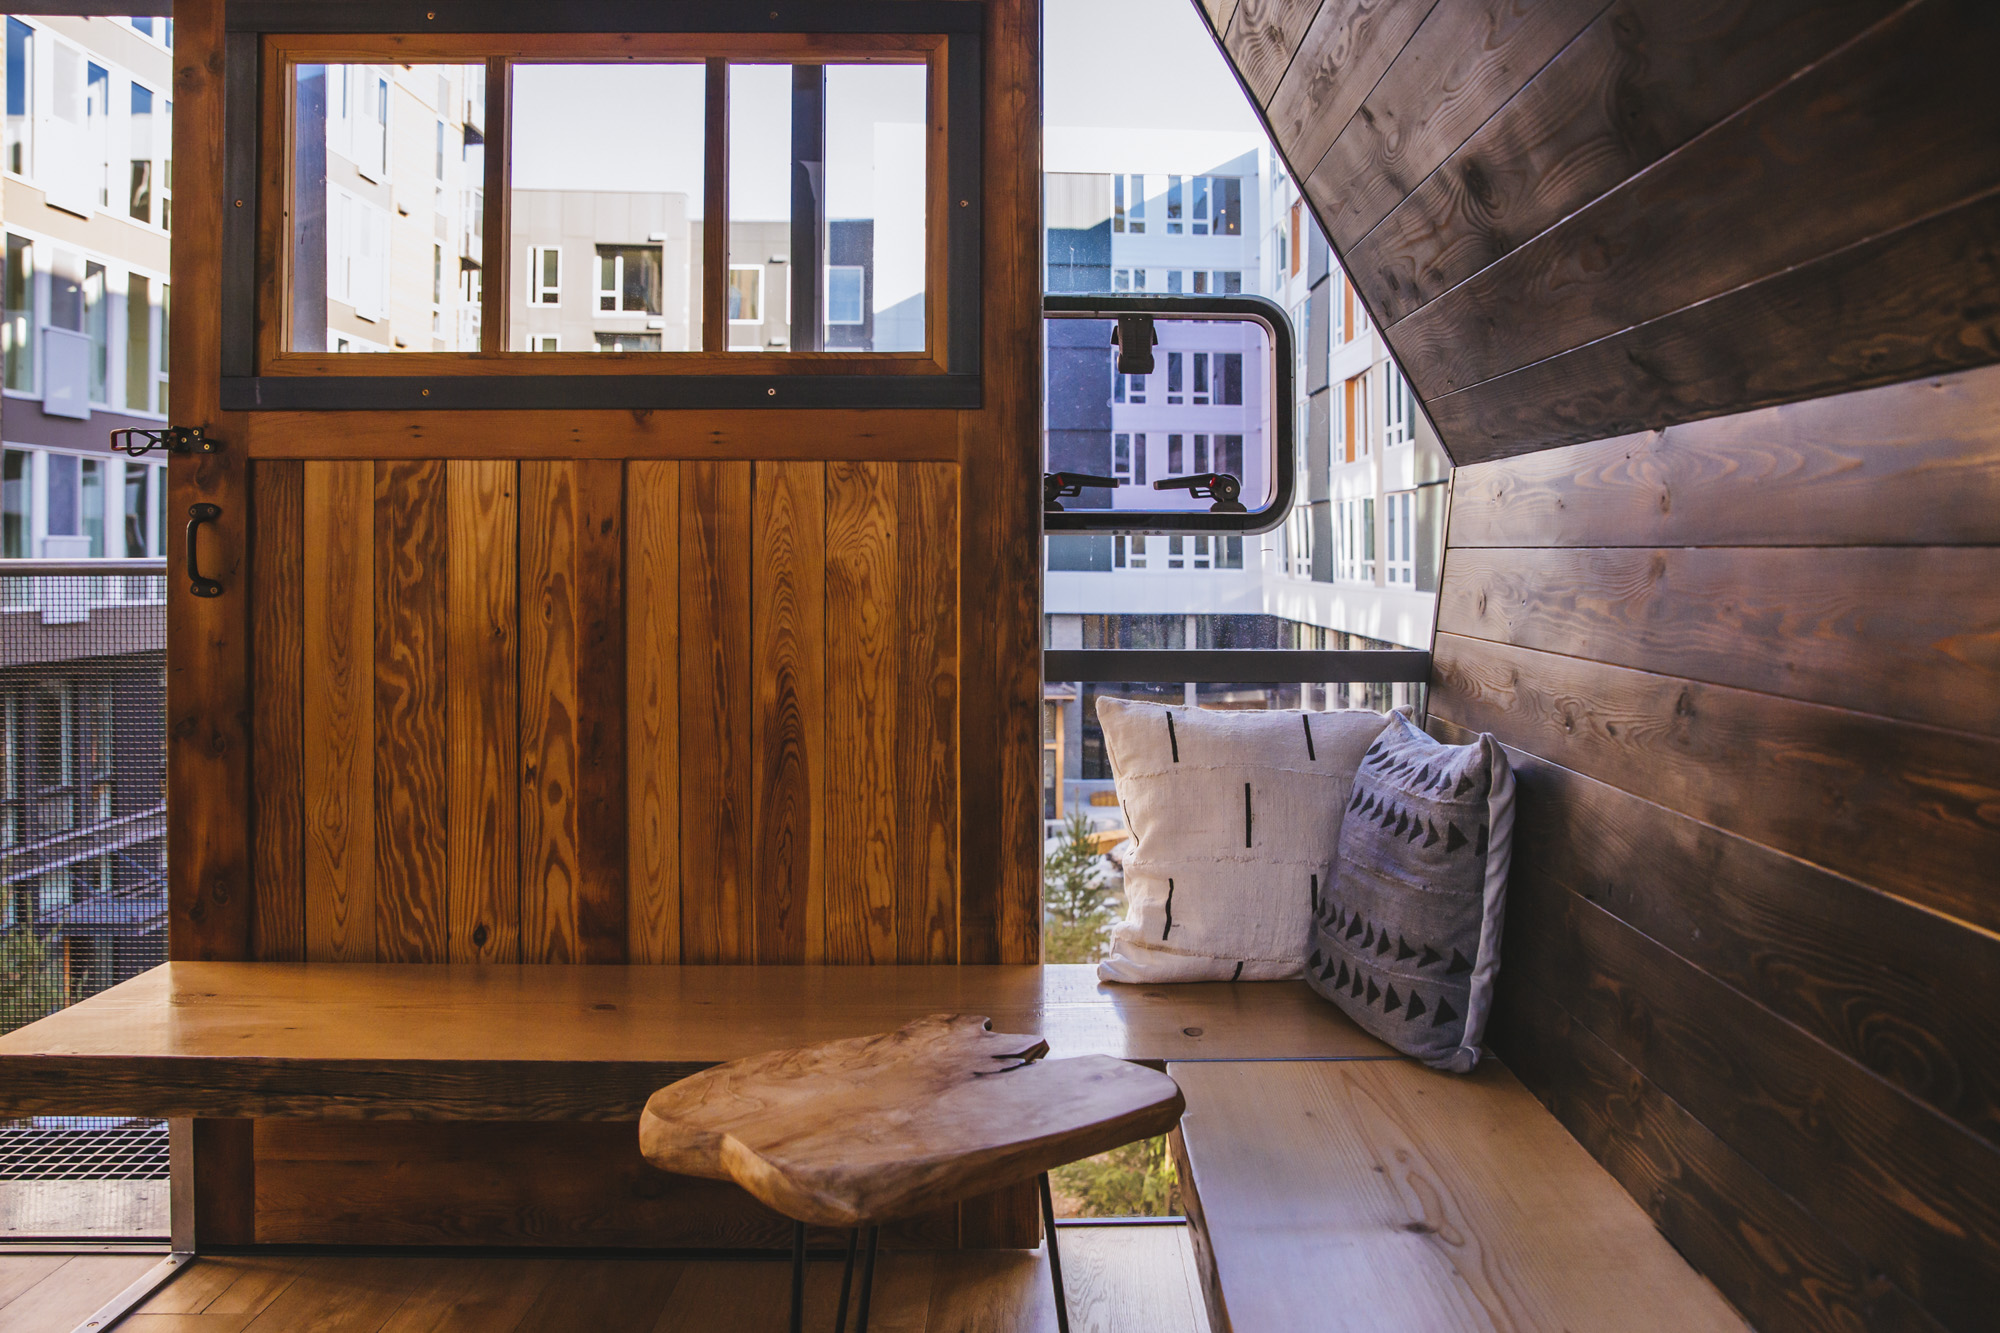 Have you ever wished for a grown-up treehouse? If so (and you have the dough) you're in luck. Sitka Apartments in South Lake Union just completed an urban treehouse, available to the residents on a first-come, first-served basis. The treehouse has a green roof, skybridge, fireplace, seating, pond, benches, decks, courtyard and small cooking area. Apartments at Sitka, managed by Vulcan Real Estate, start at $2,020. There are also 77{ }multi-family tax exemption units available to{ }people earning 65 to 80 percent of average median income. (Image: Sunita Martini / Seattle Refined)